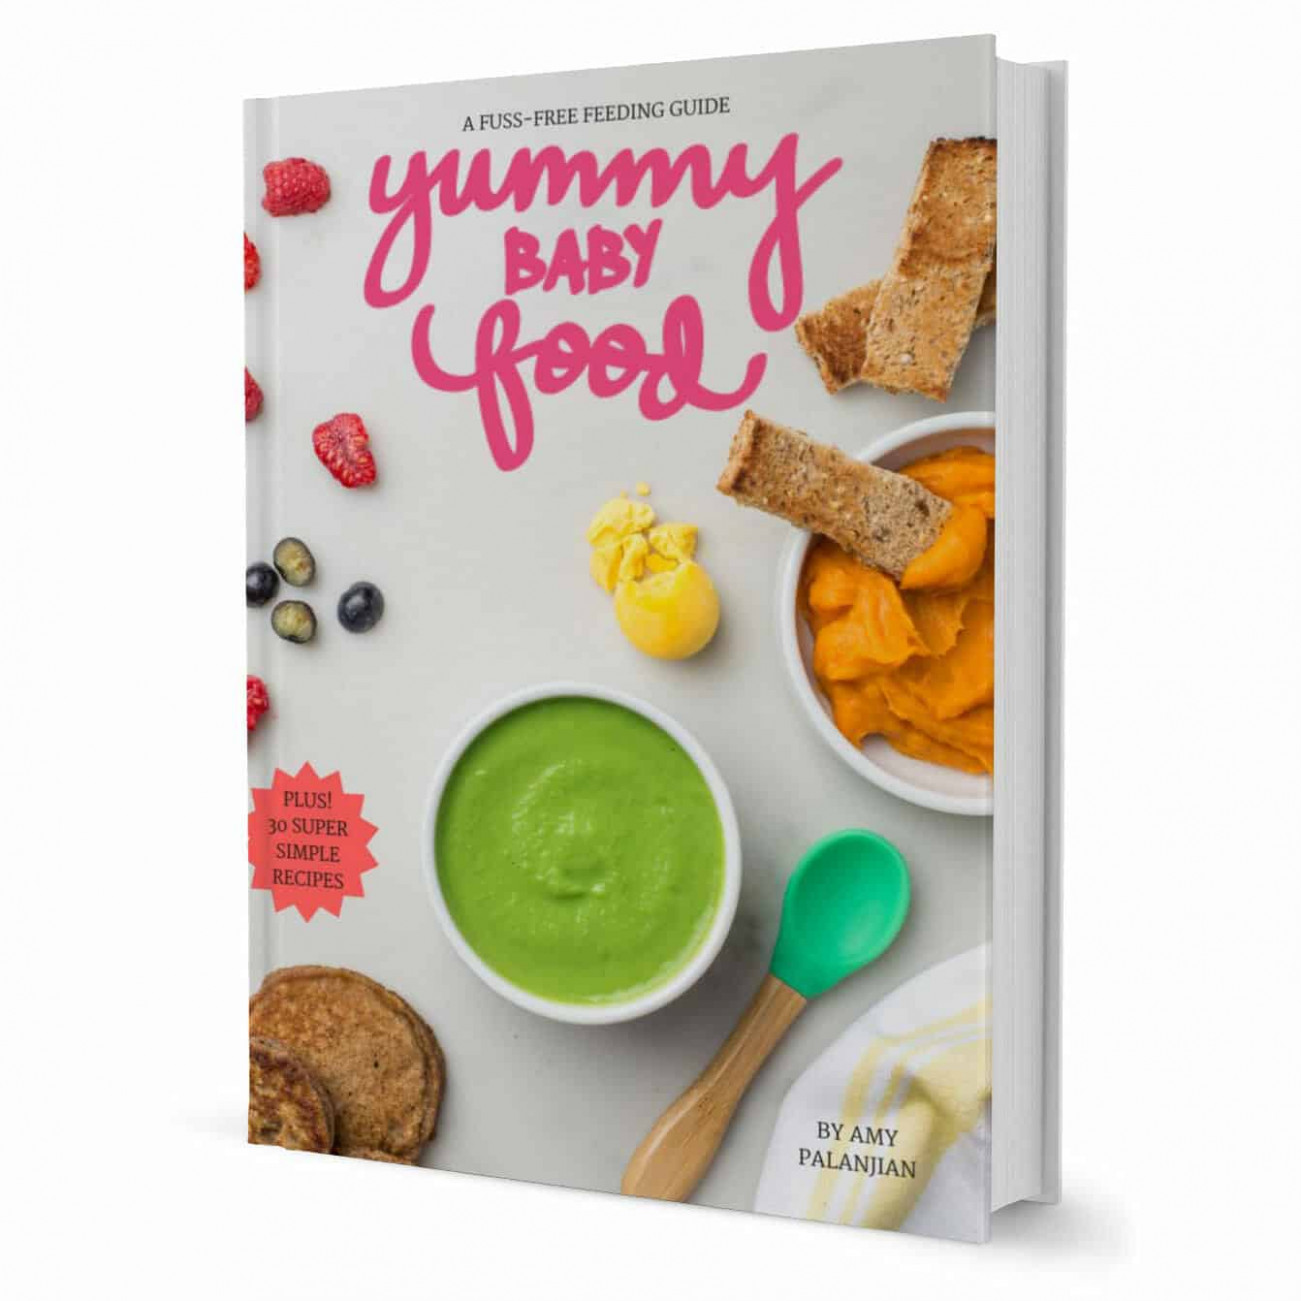 Bookshelf Archives - Yummy Toddler Food - yummy baby food recipes